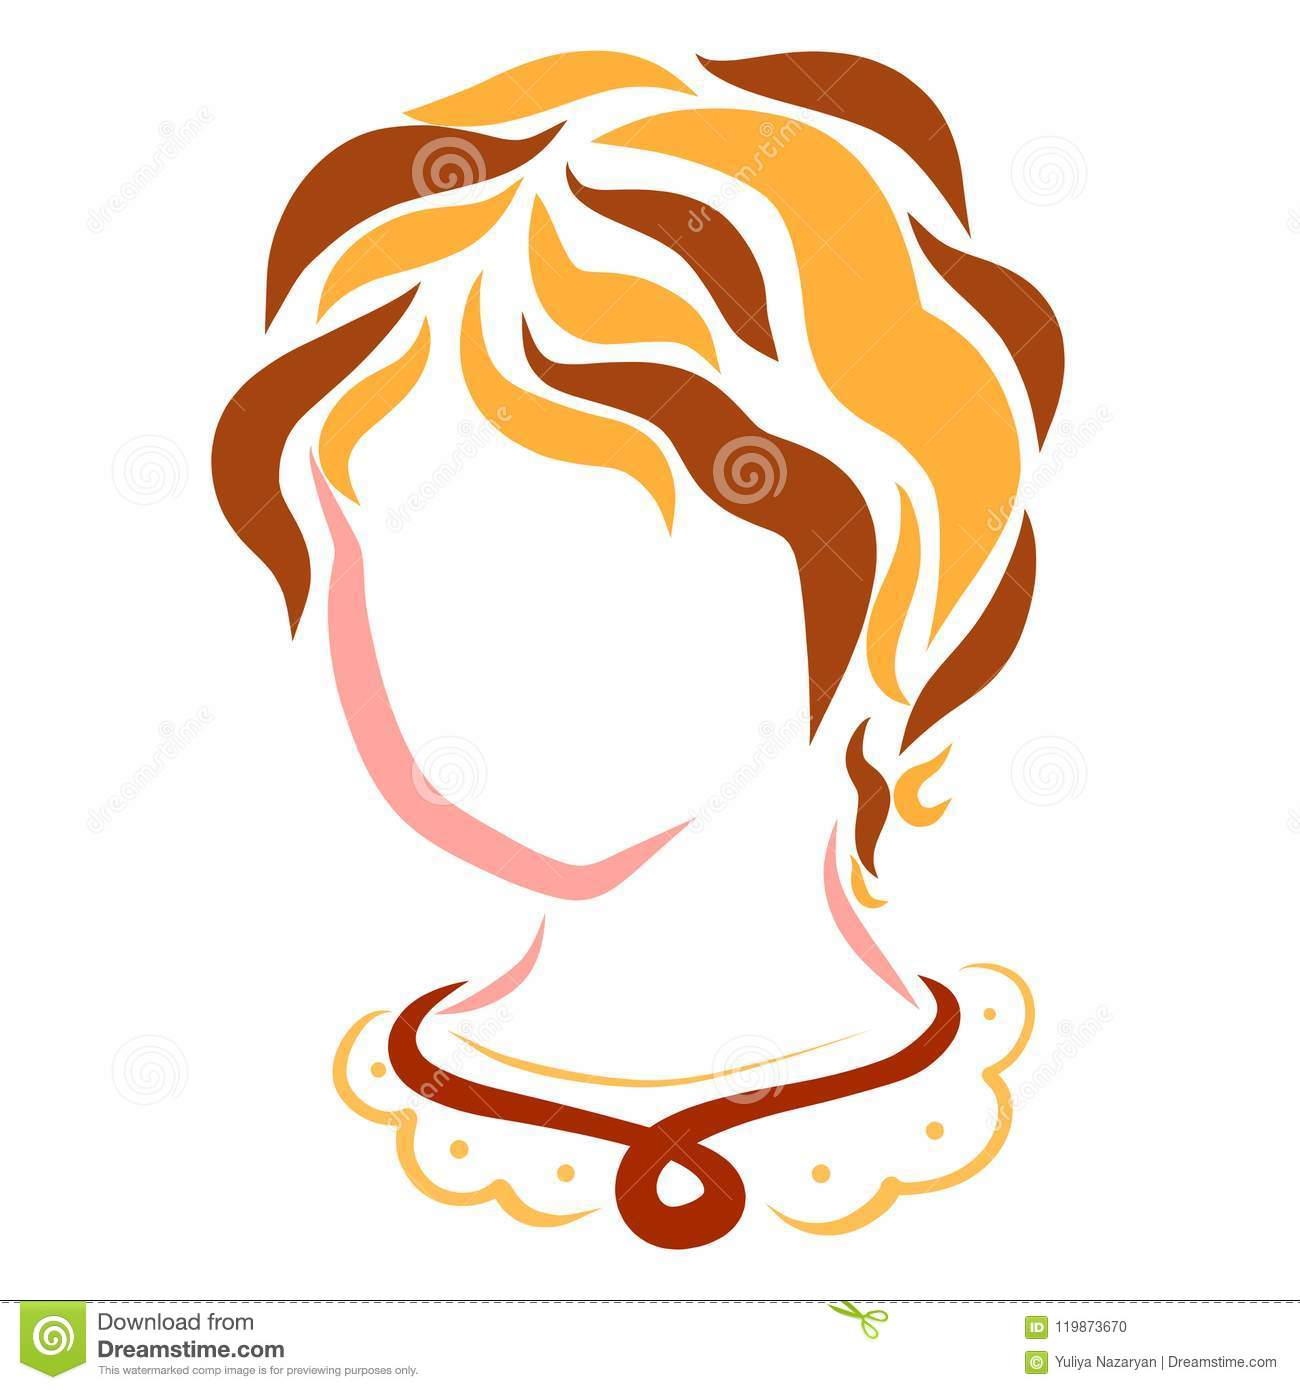 Cute young woman or girl, head, flowing lines